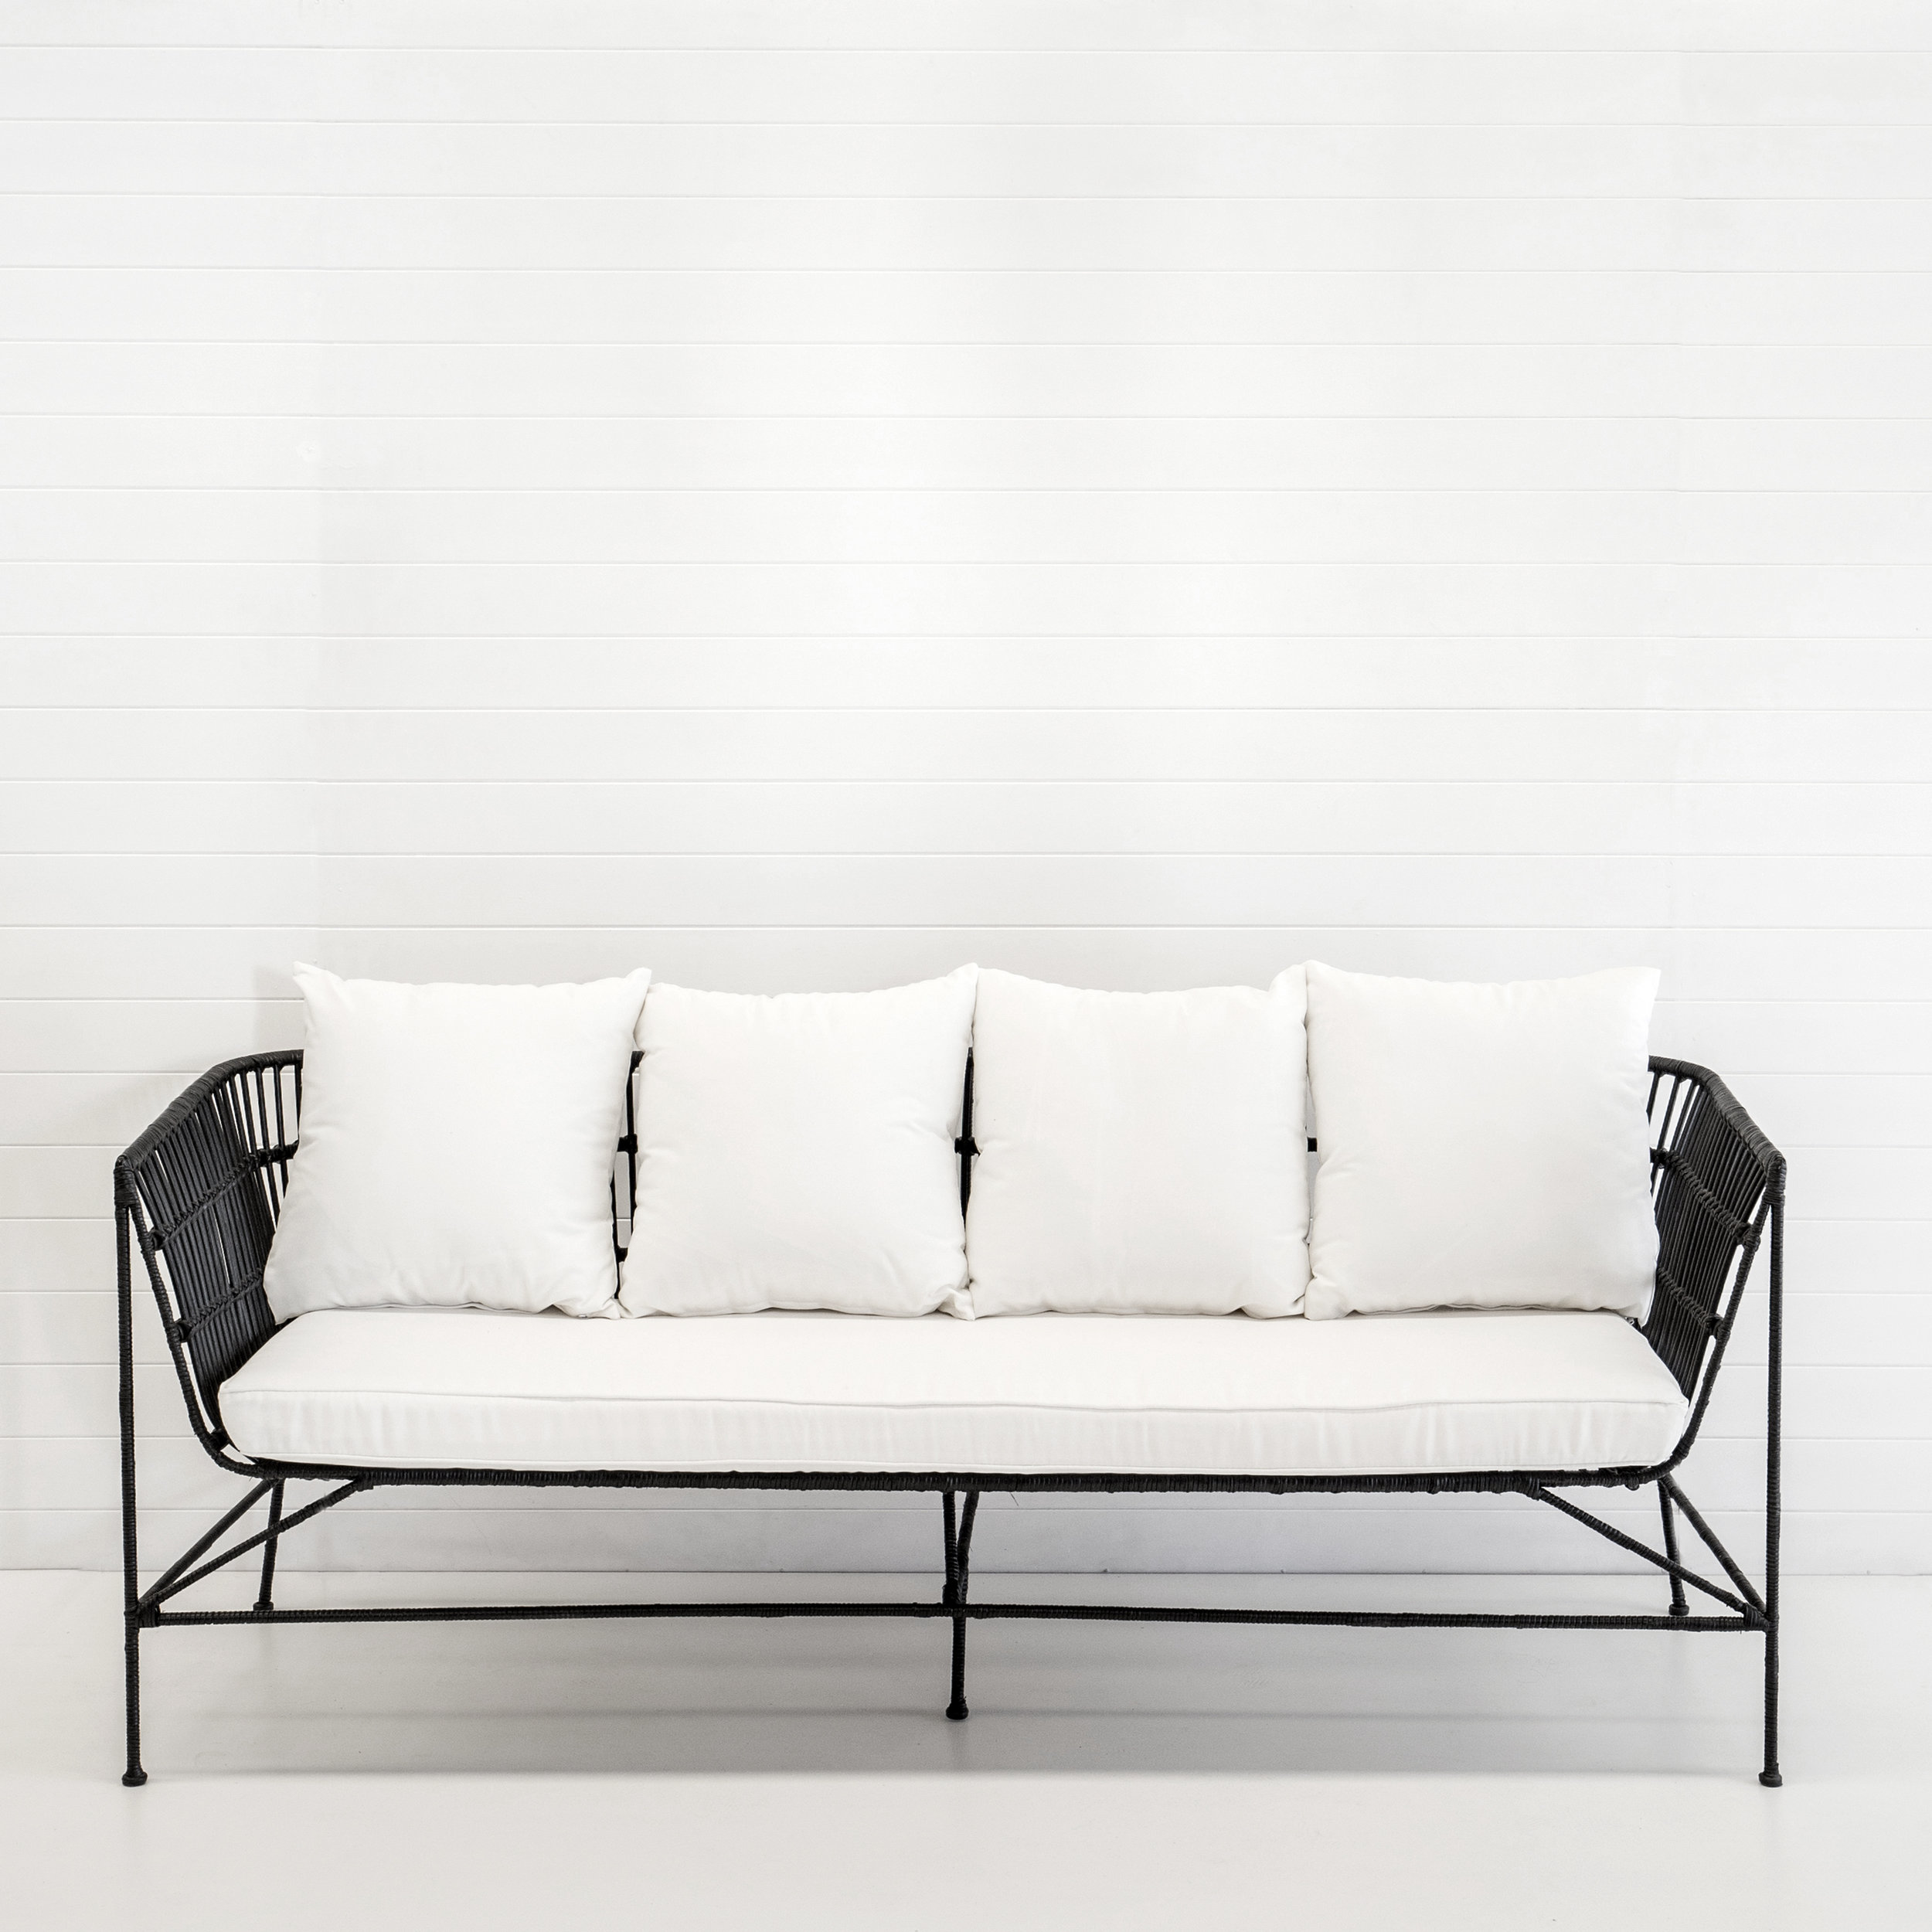 INDIE BLACK 3-SEATER SOFA WITH WHITE CUSHIONS